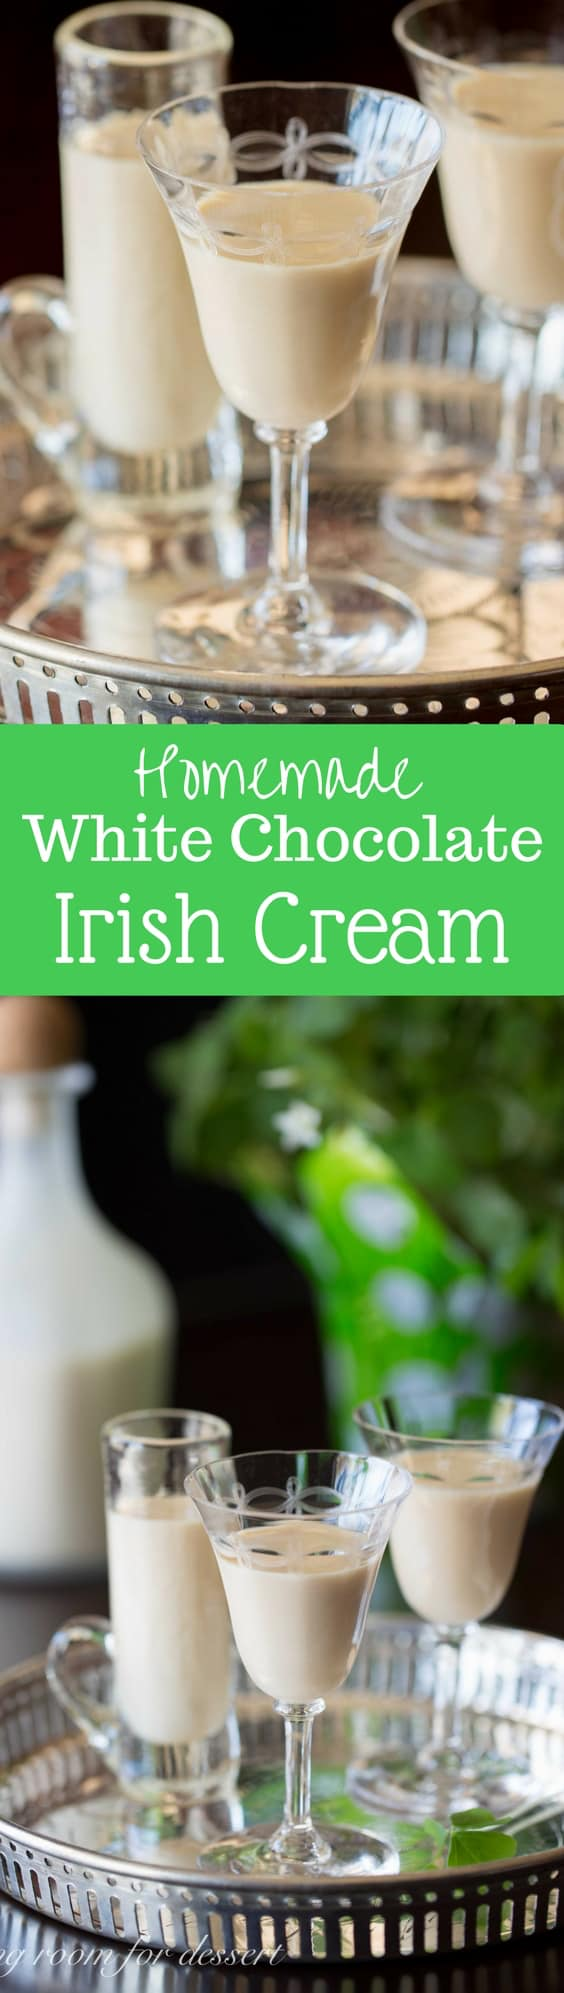 White Chocolate Irish Cream - Creamy, dreamy, smooth and delicious! A wonderful after dinner drink that tastes like dessert.  www.savingdessert.com